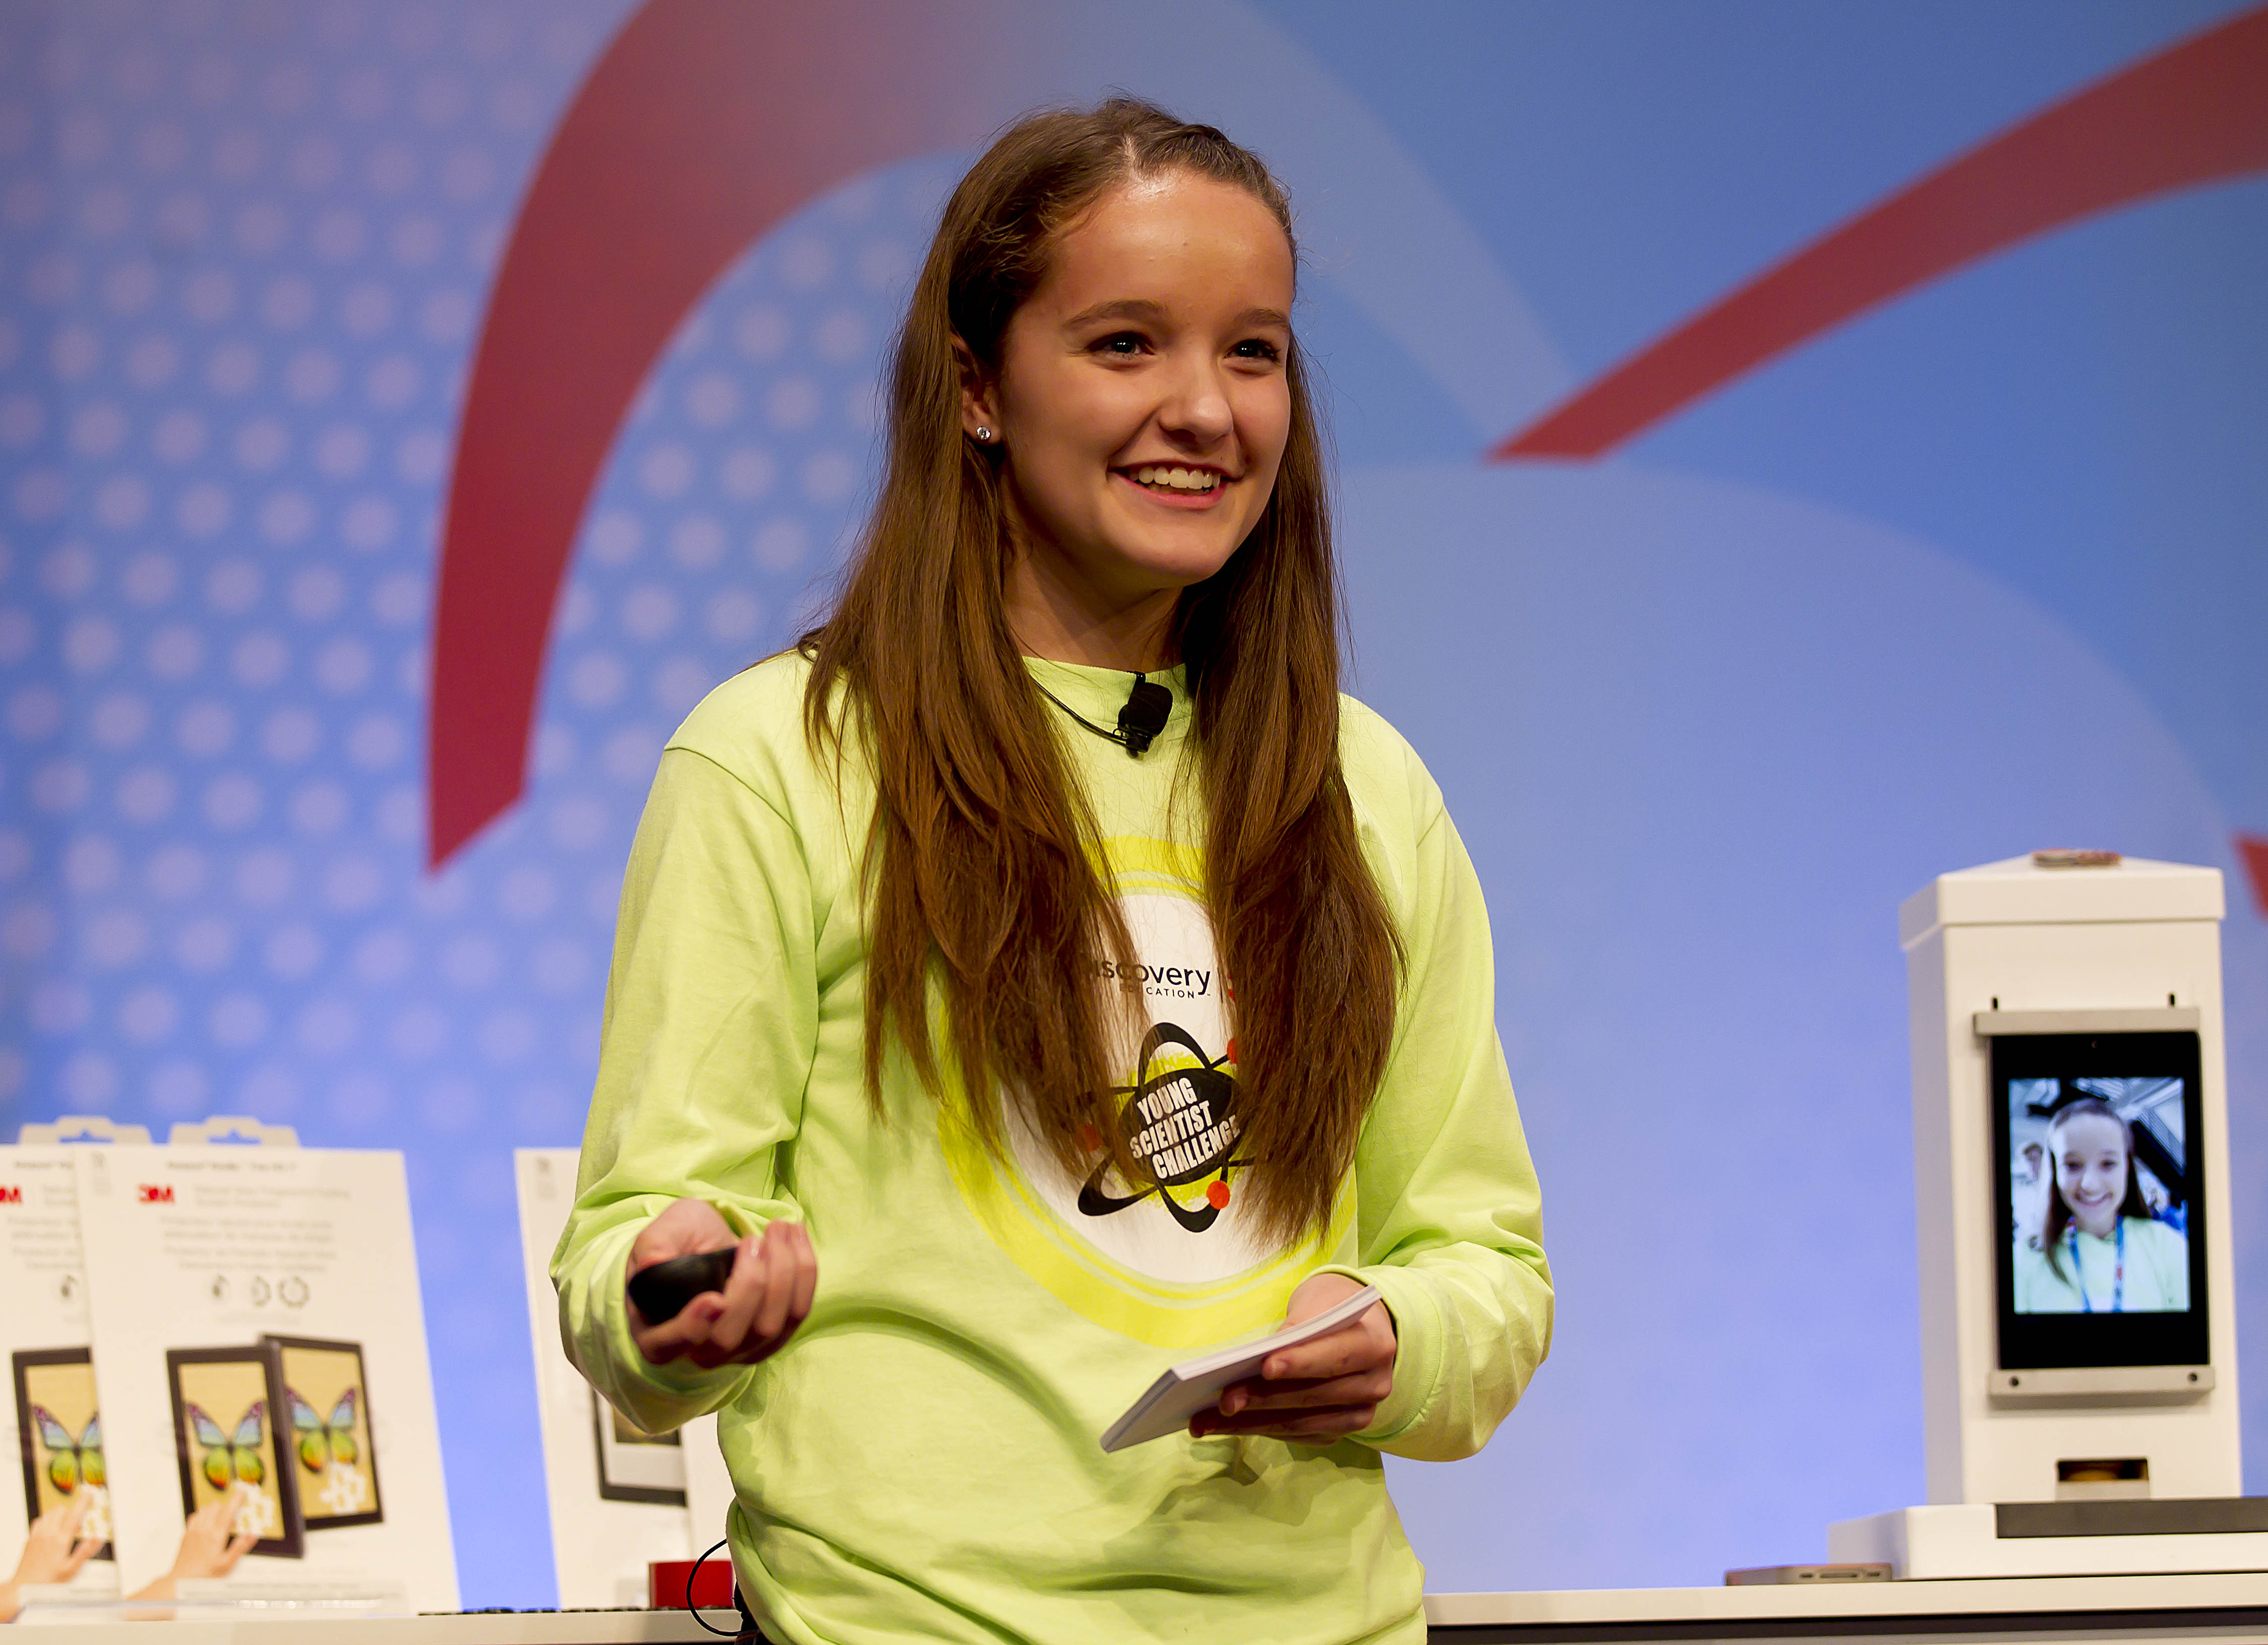 Brooke Martin, a 13-year-old from Spokane who invesnted, presents at a national science competition. Photo via 3M.